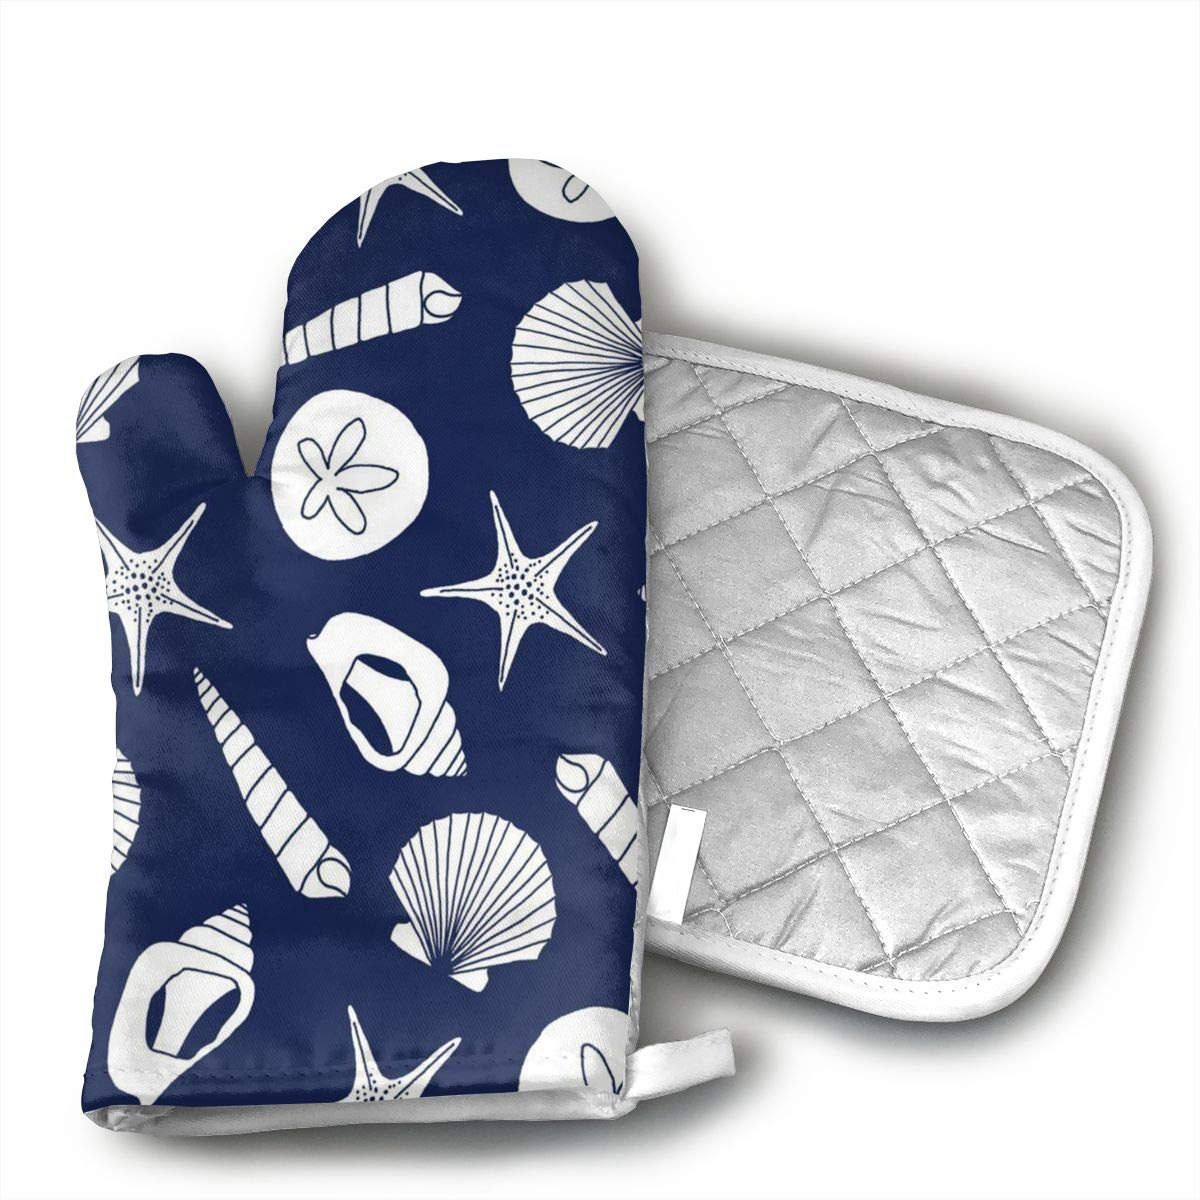 MEILVWEN Ocean Seashells Oven Mitt and Pot Holder Set,Heat Resistant for Cooking and Baking Kitchen Gift